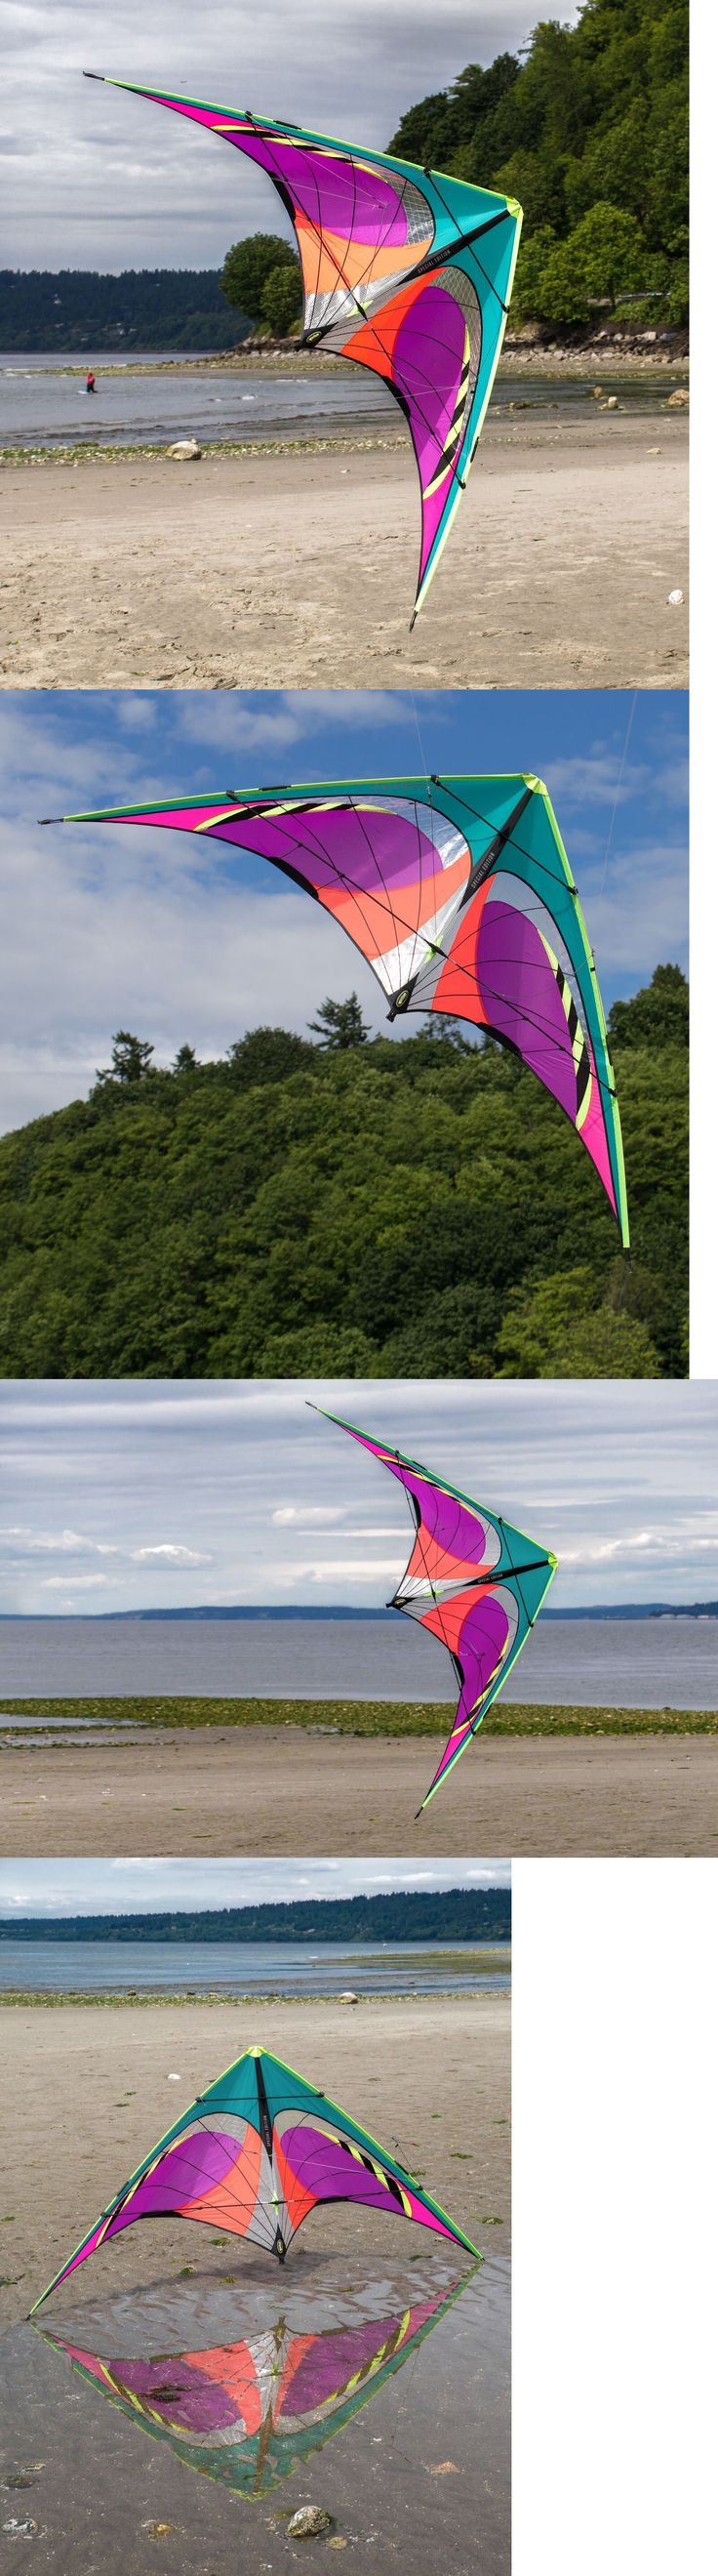 Kites 2569: Prism Quantum Radian Special Edition - Stunt Kite - Complete With Line -> BUY IT NOW ONLY: $115 on eBay!